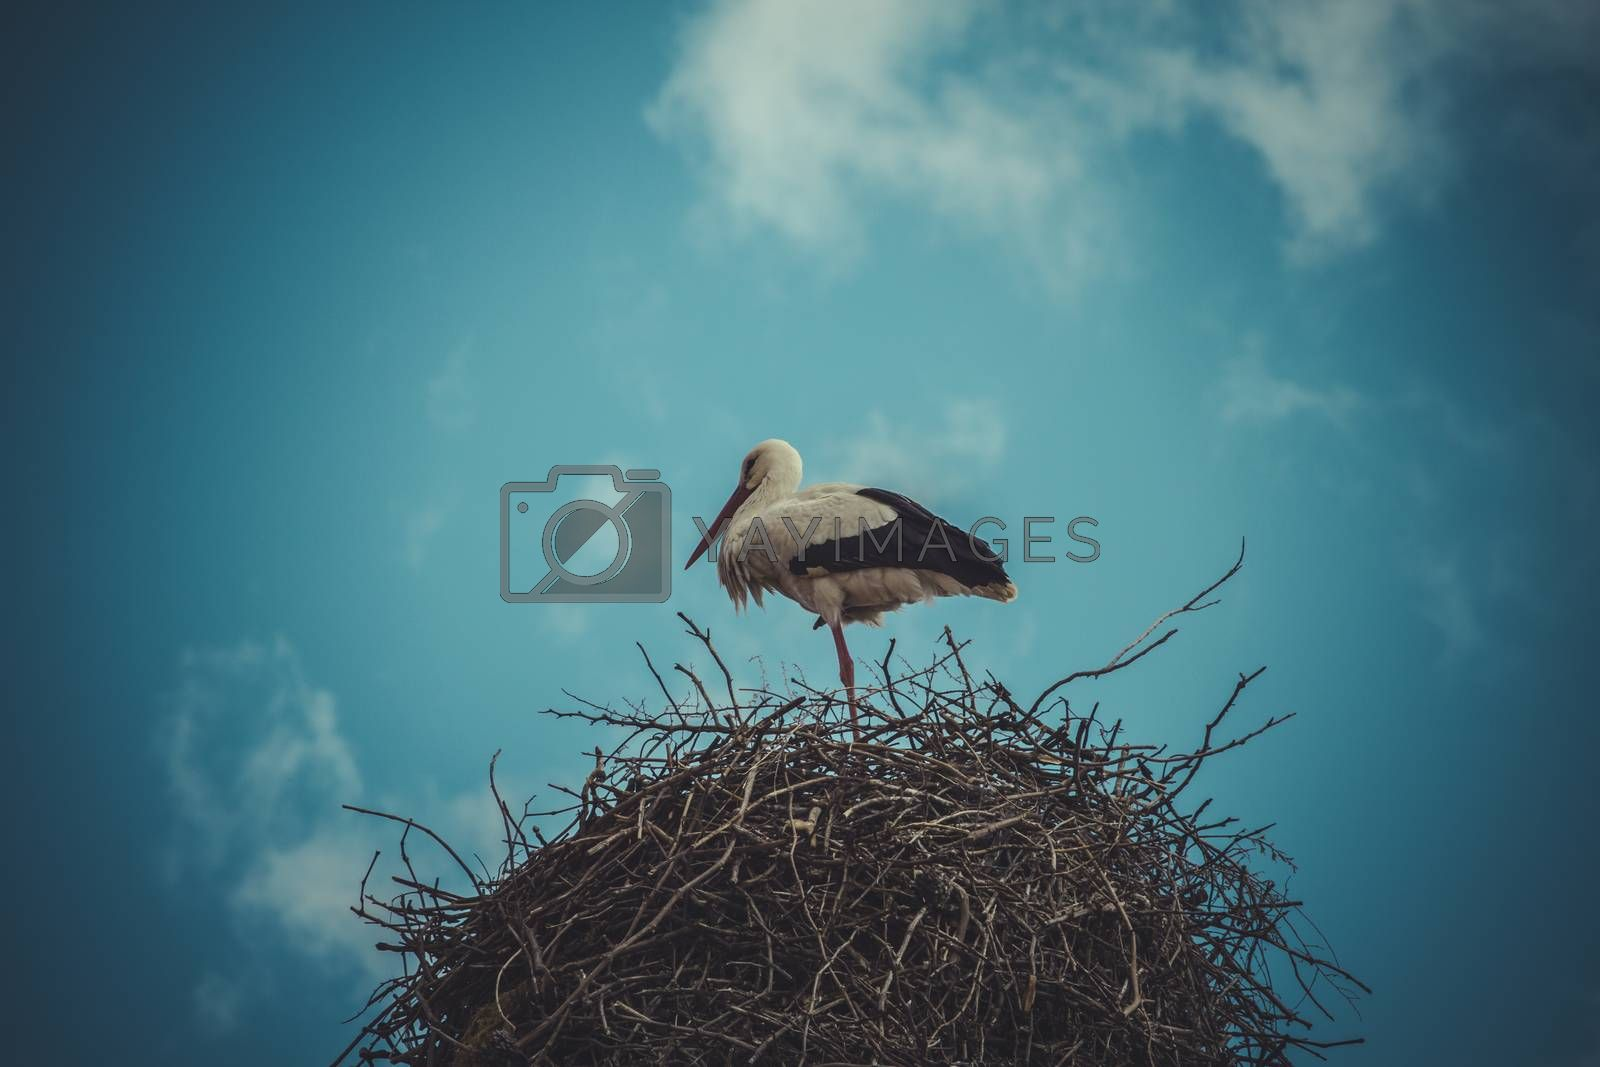 Season, Stork nest made ������of tree branches over blue sky in dramatic